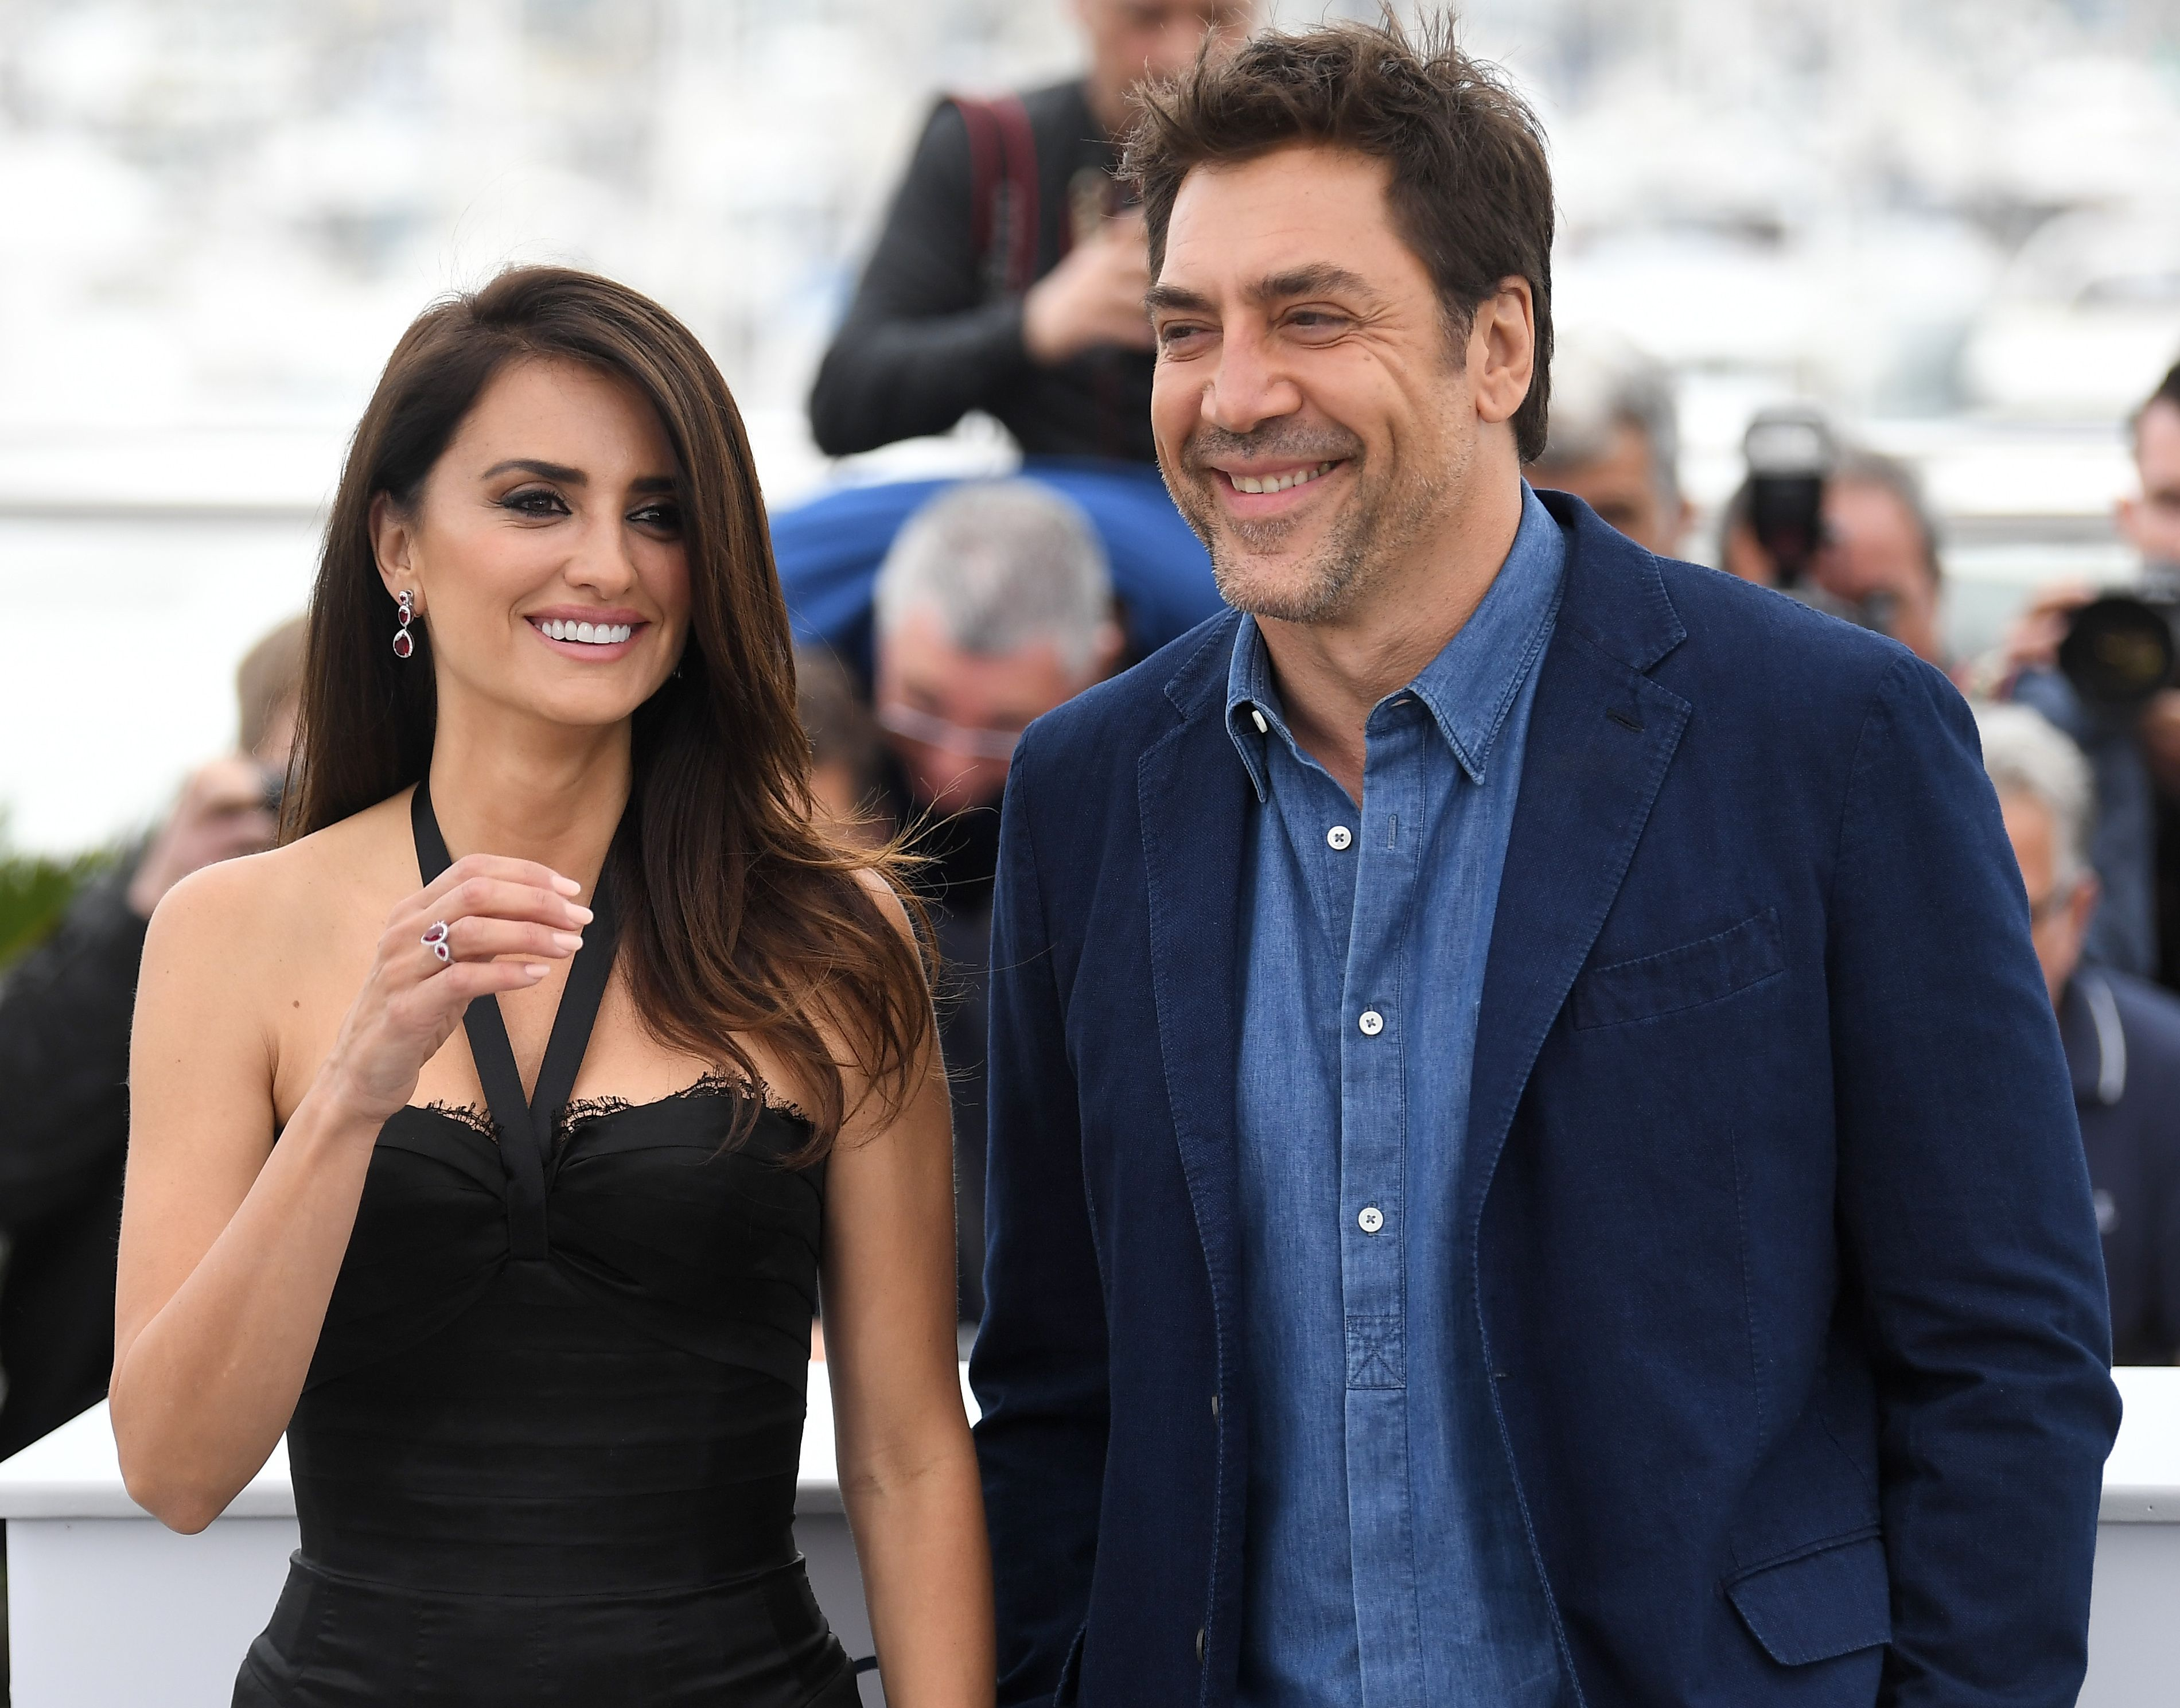 Penelope Cruz and Javier Bardem'Everybody Knows' photocall, 71st Cannes Film Festival, France - 09 May 2018